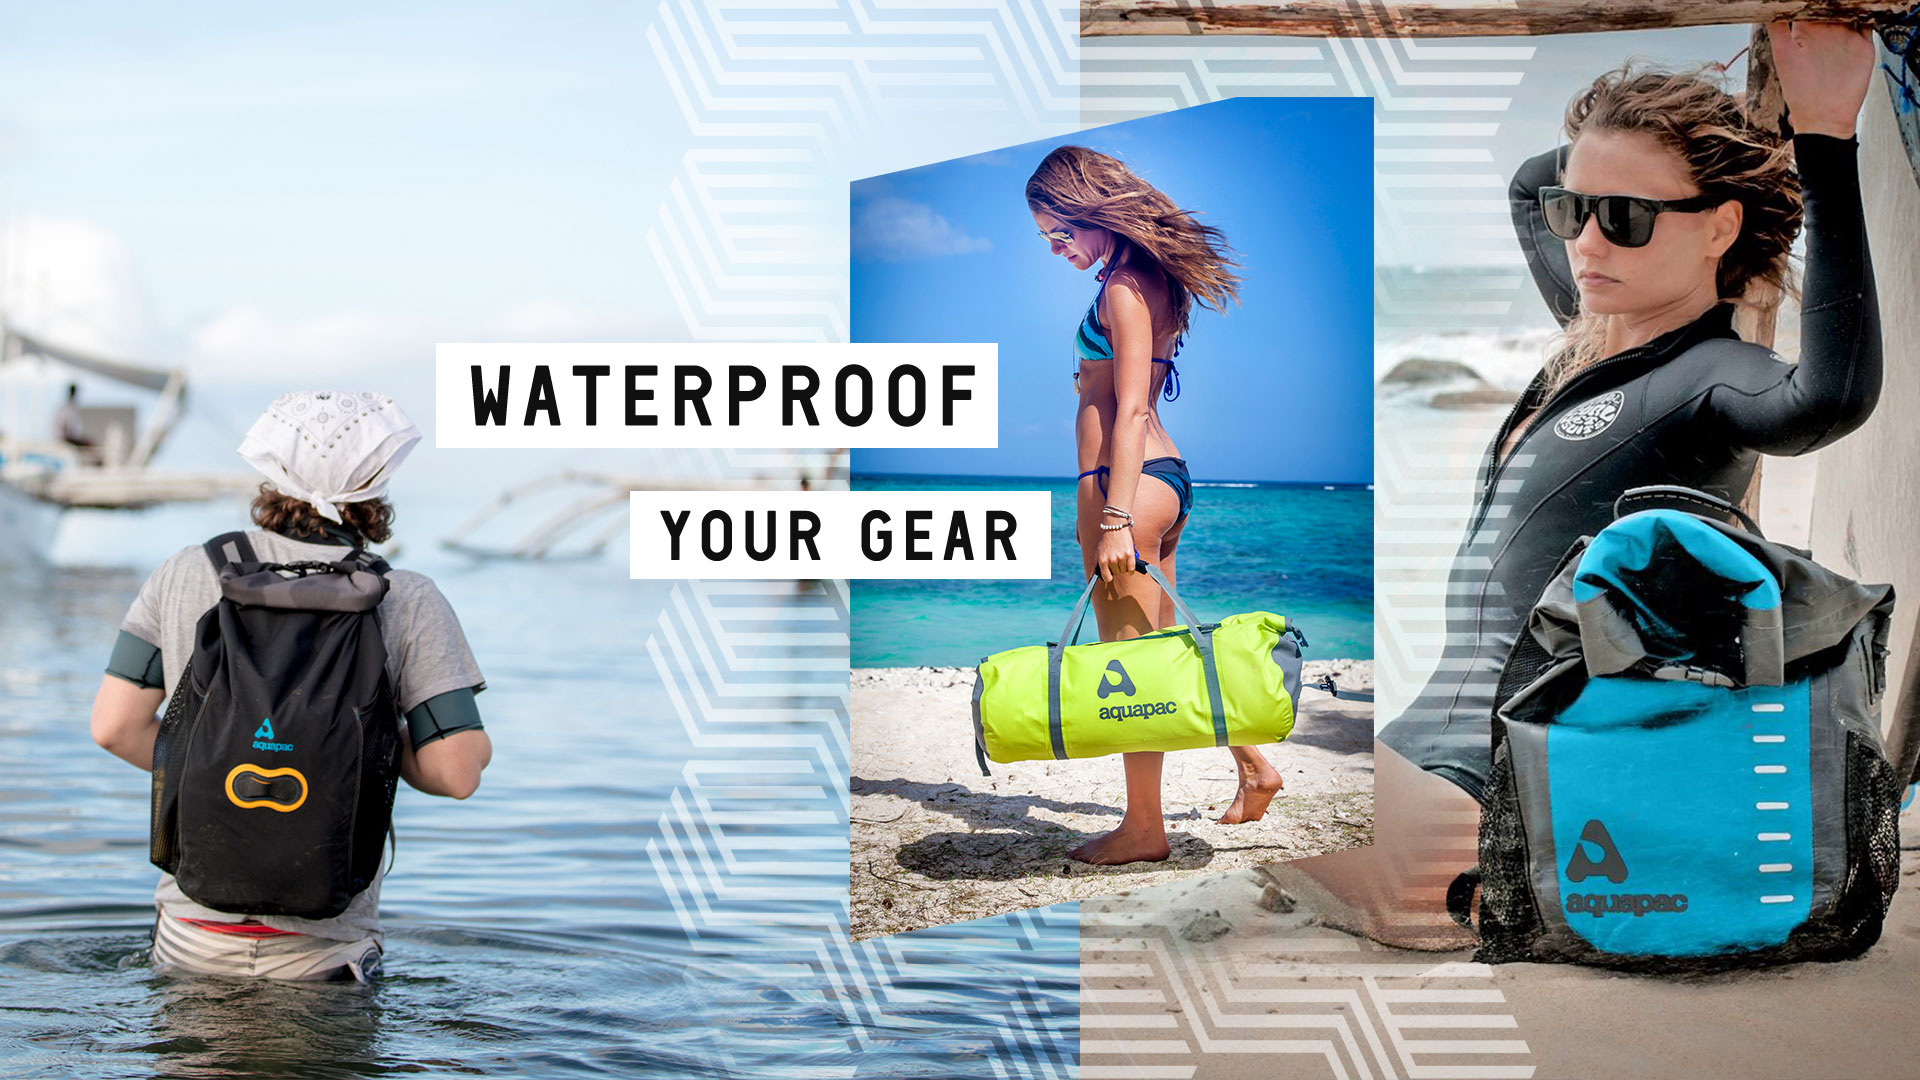 Waterproof your gear